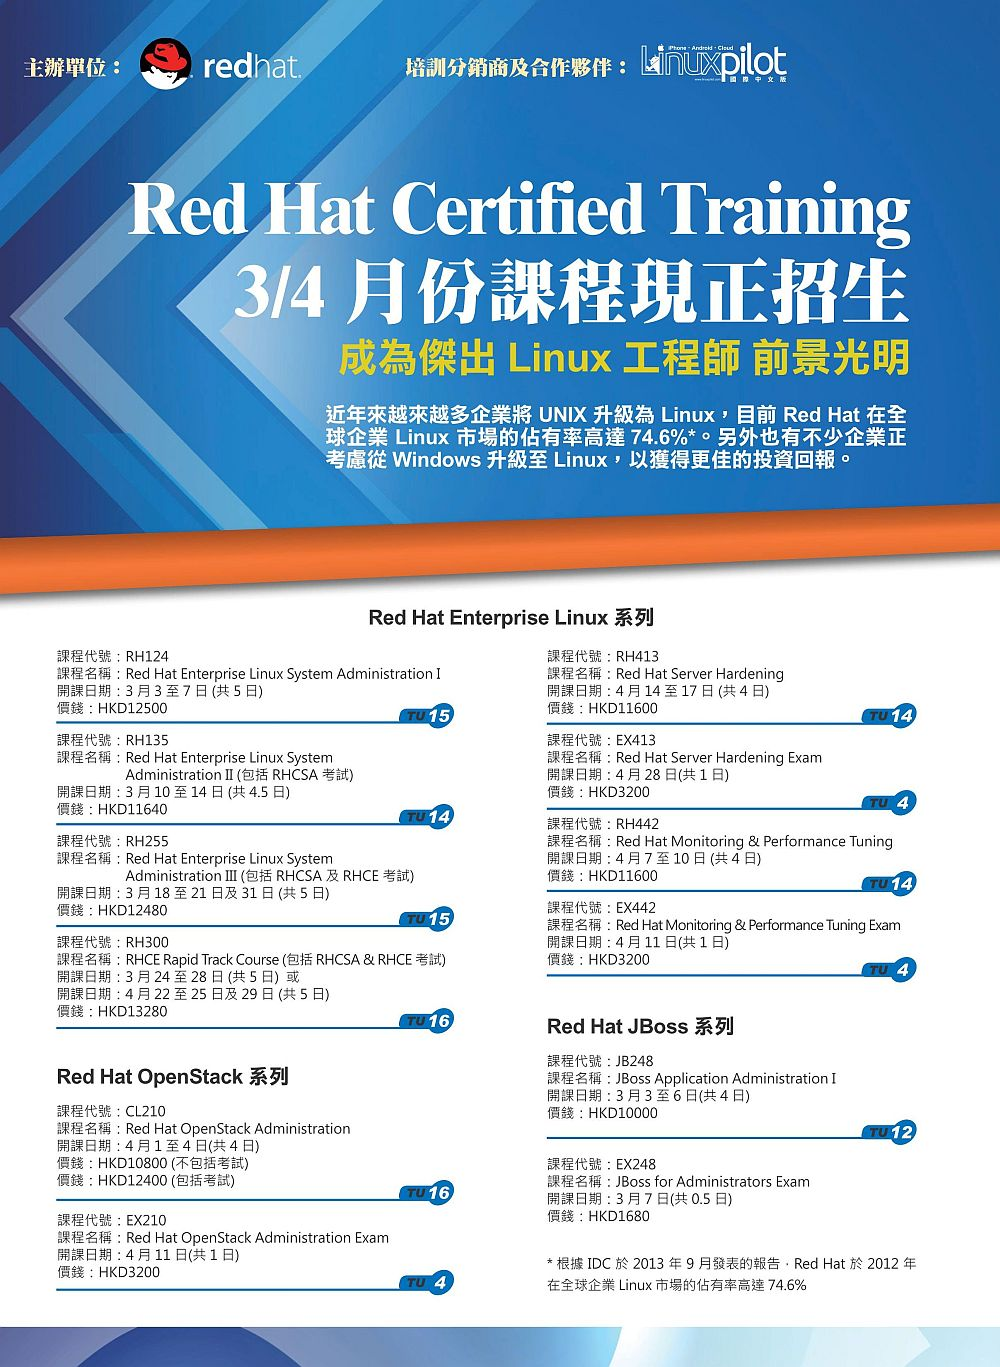 red-hat-training-poster01b